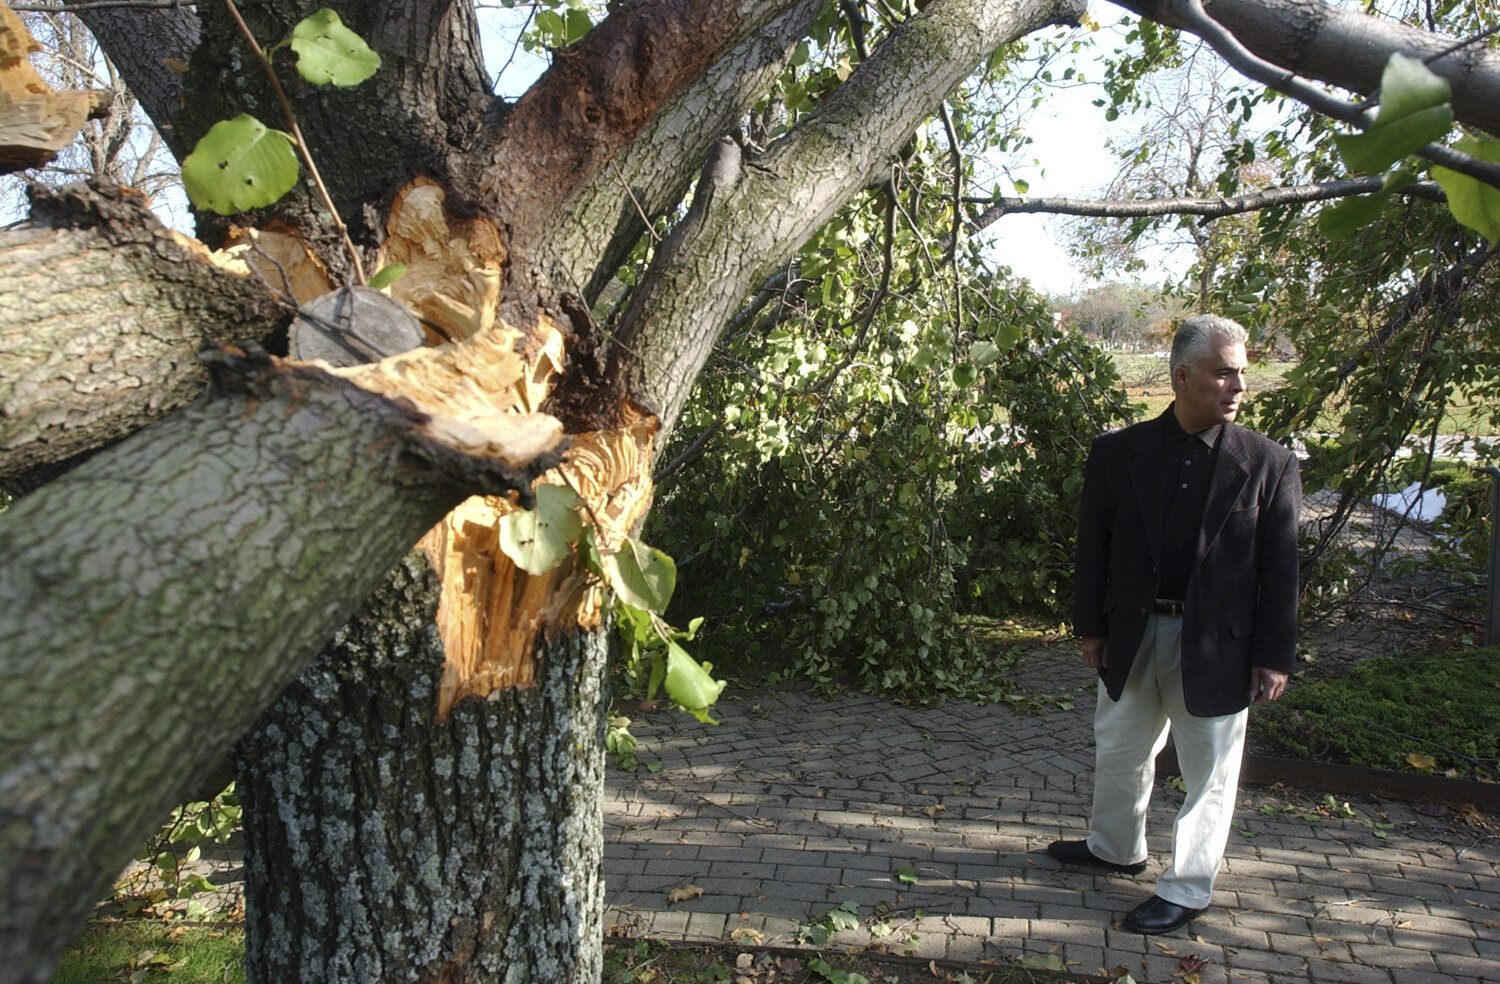 Director of Diocesan Cemeteries, Carmen Colao, inspects the damage at Holy Cross Cemetery in Lackawanna. A violent storm moved through the area on Oct. 13, 2006 damaging trees and leaving hundreds with out power throughout Western New York.